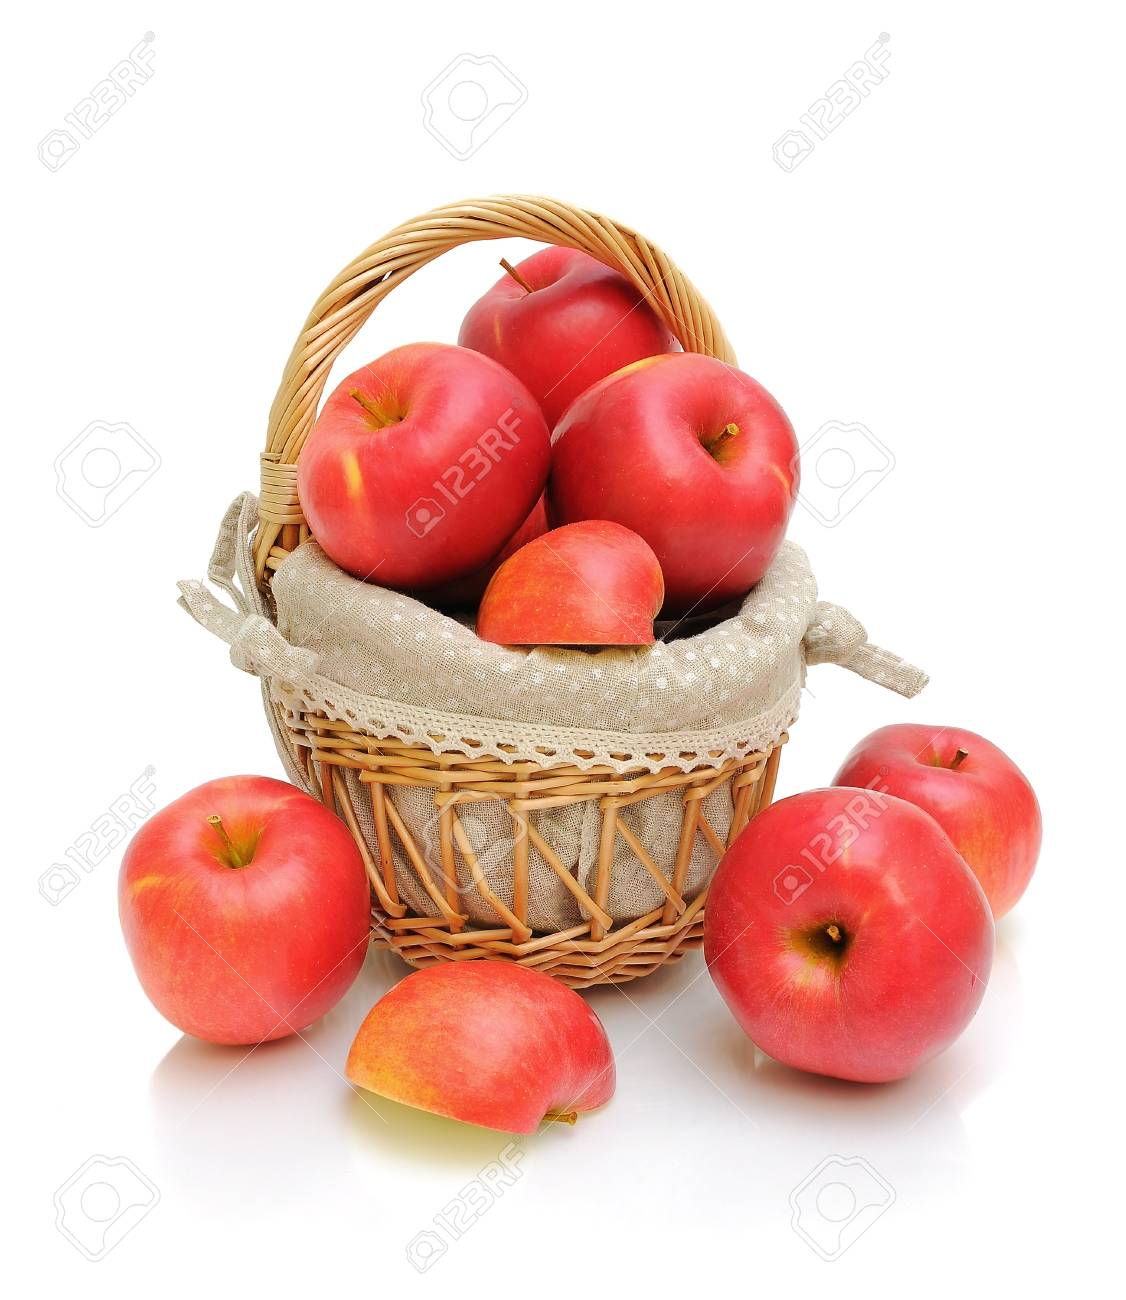 red apples in a wicker basket on a white background. vertical photo. Stock Photo - 18786433